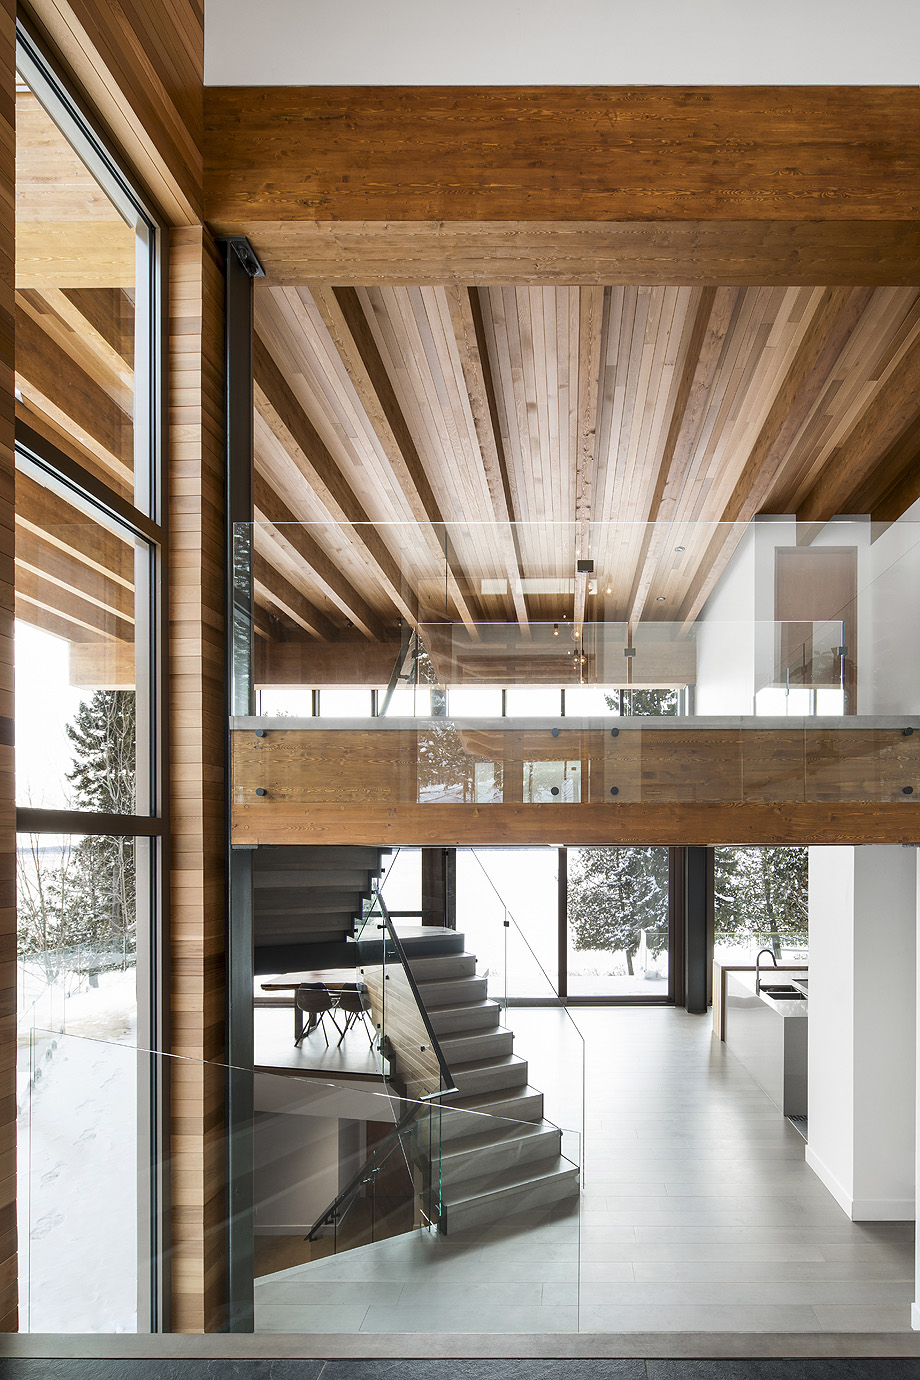 casa accostee de bourgeois lechasseur architects - foto adrien williams (5)